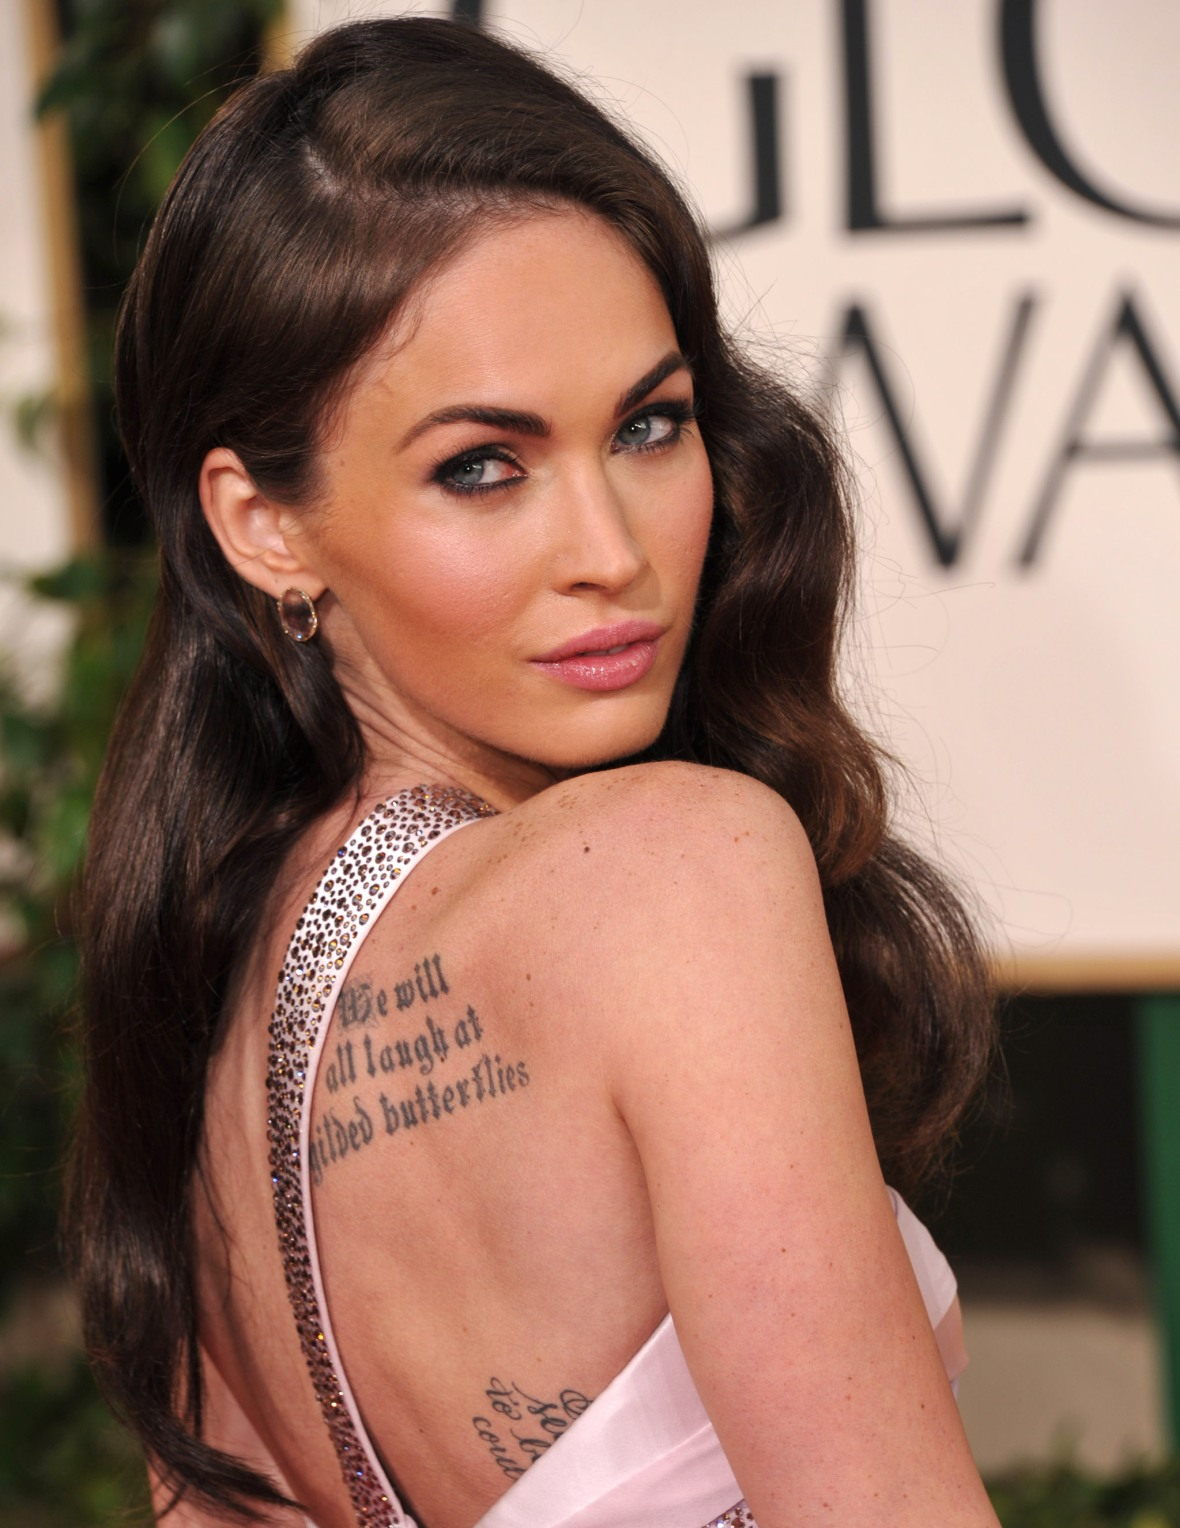 Megan Fox Plastic Surgery: Has the Actress Gone Under the